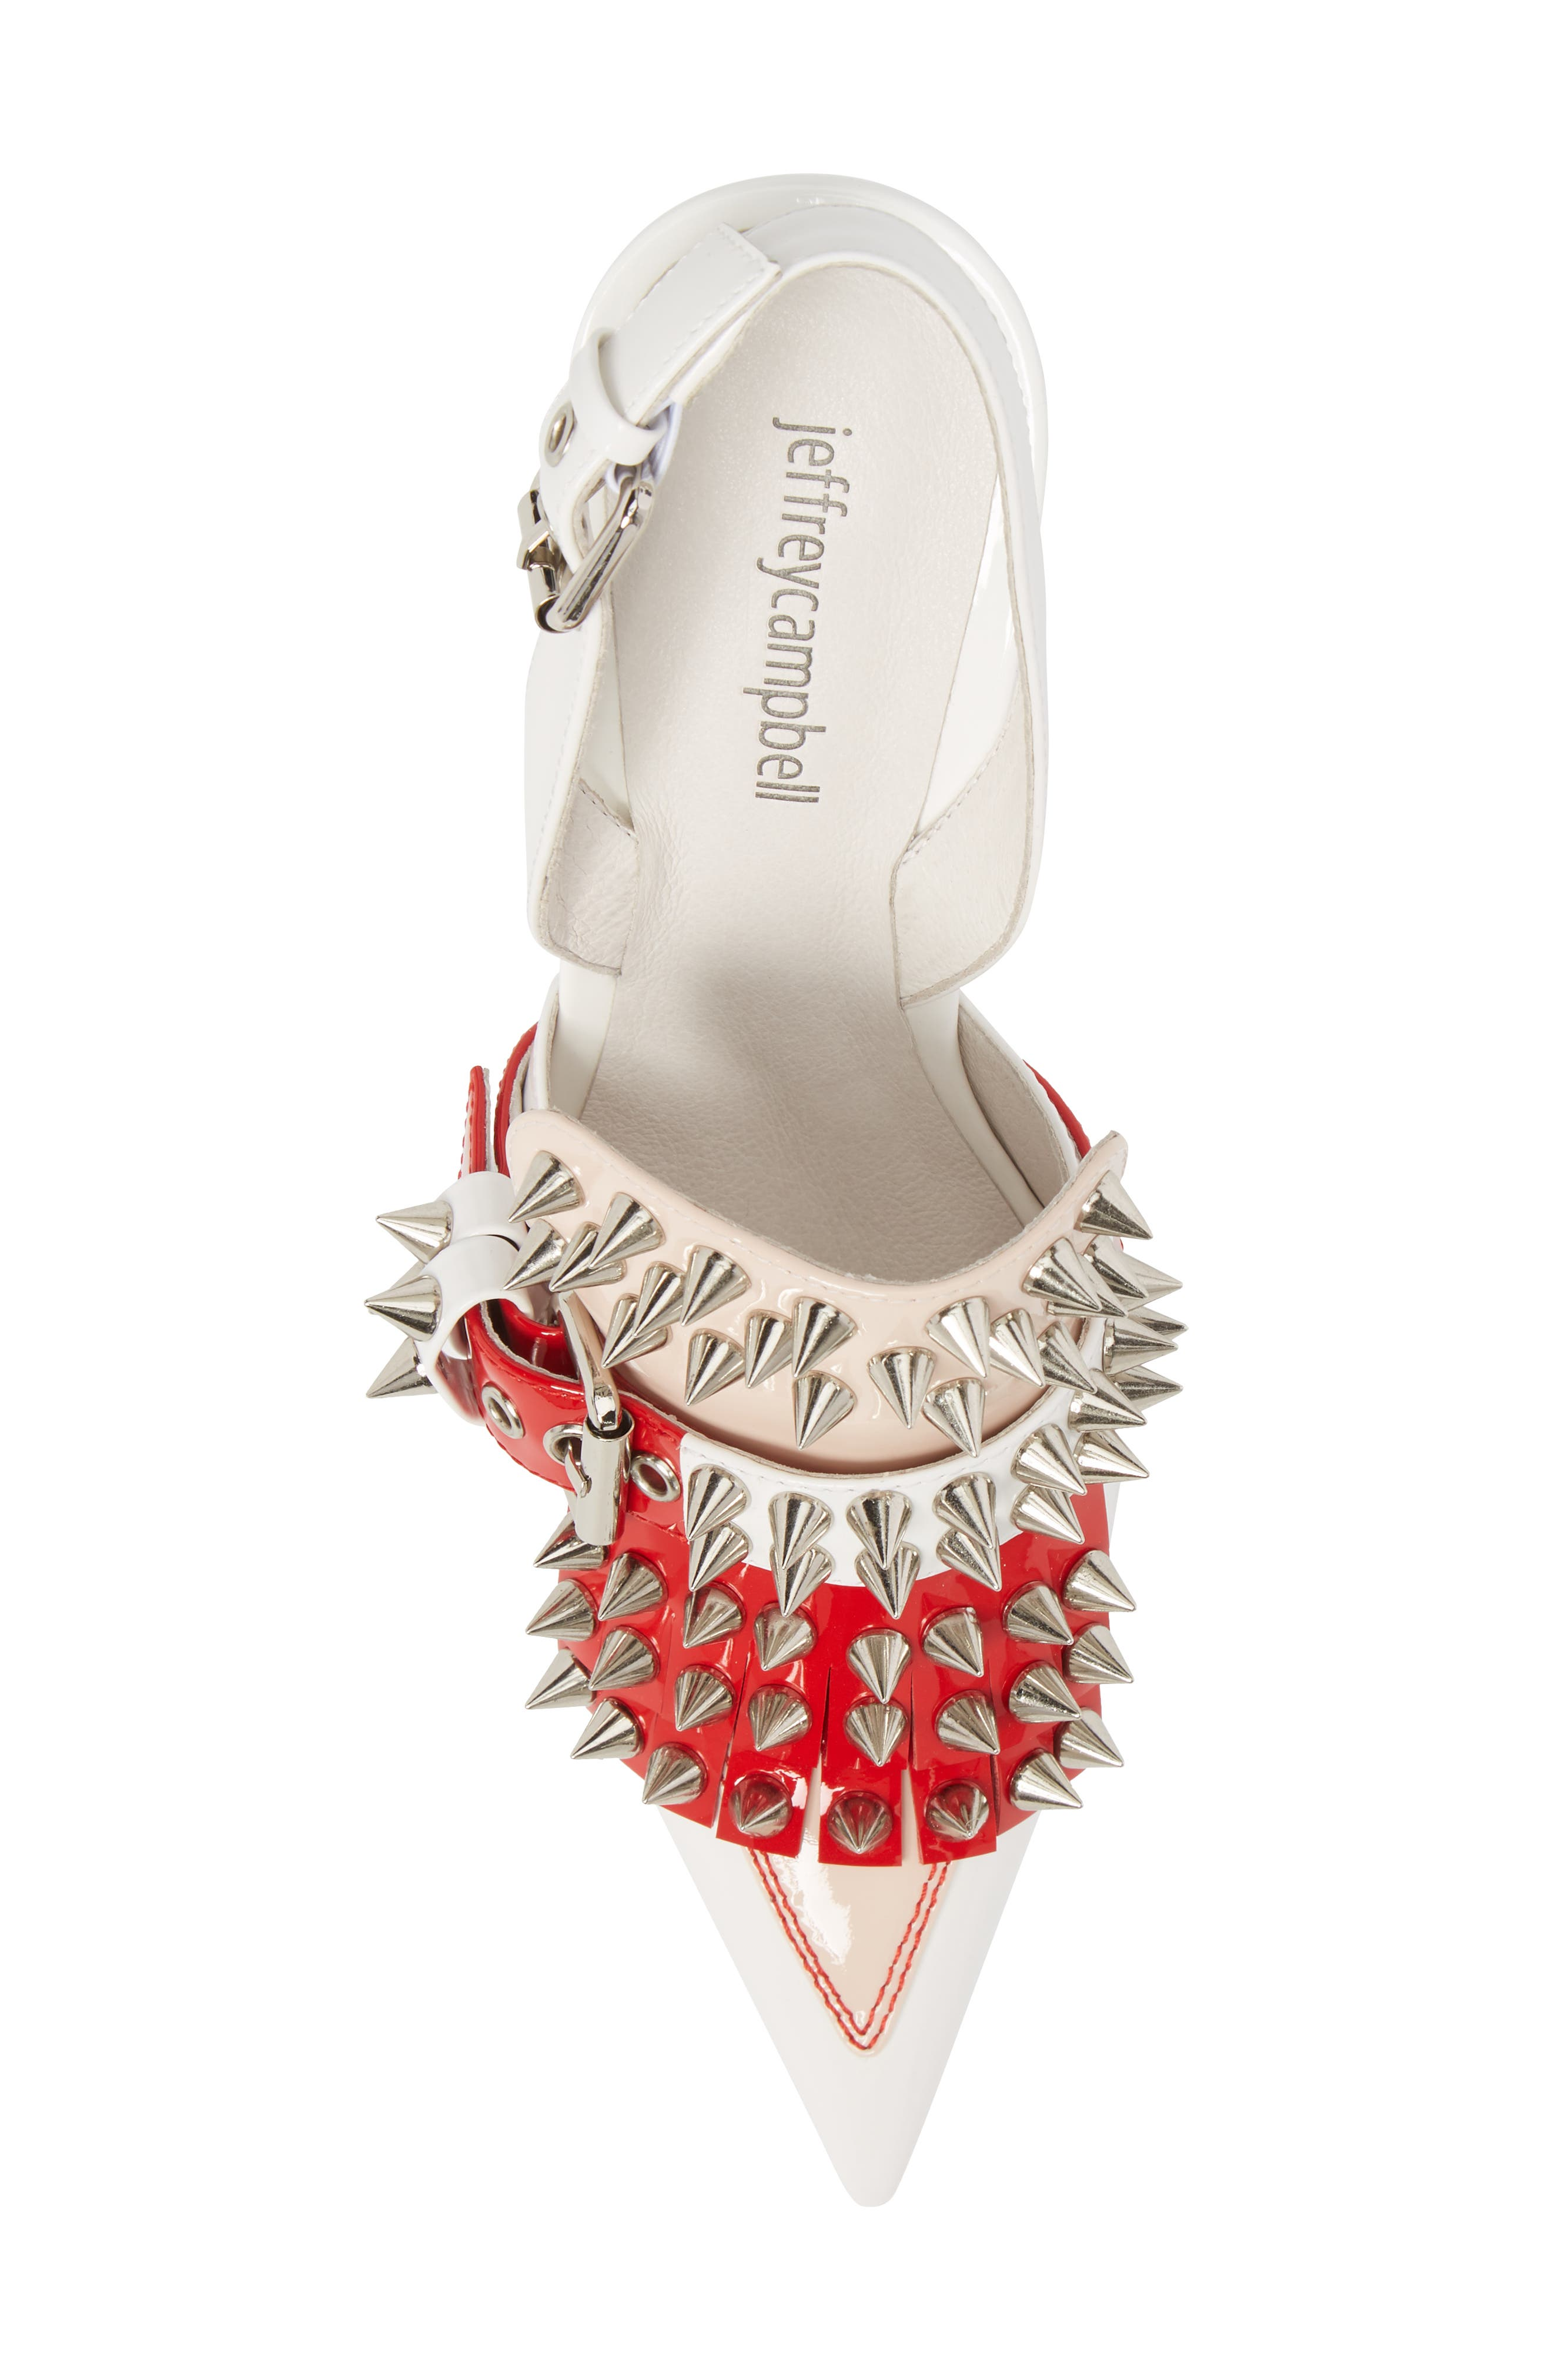 Vicious-2 Studded Loafer Pump,                             Alternate thumbnail 5, color,                             White/ Red/ Pink Patent/ White